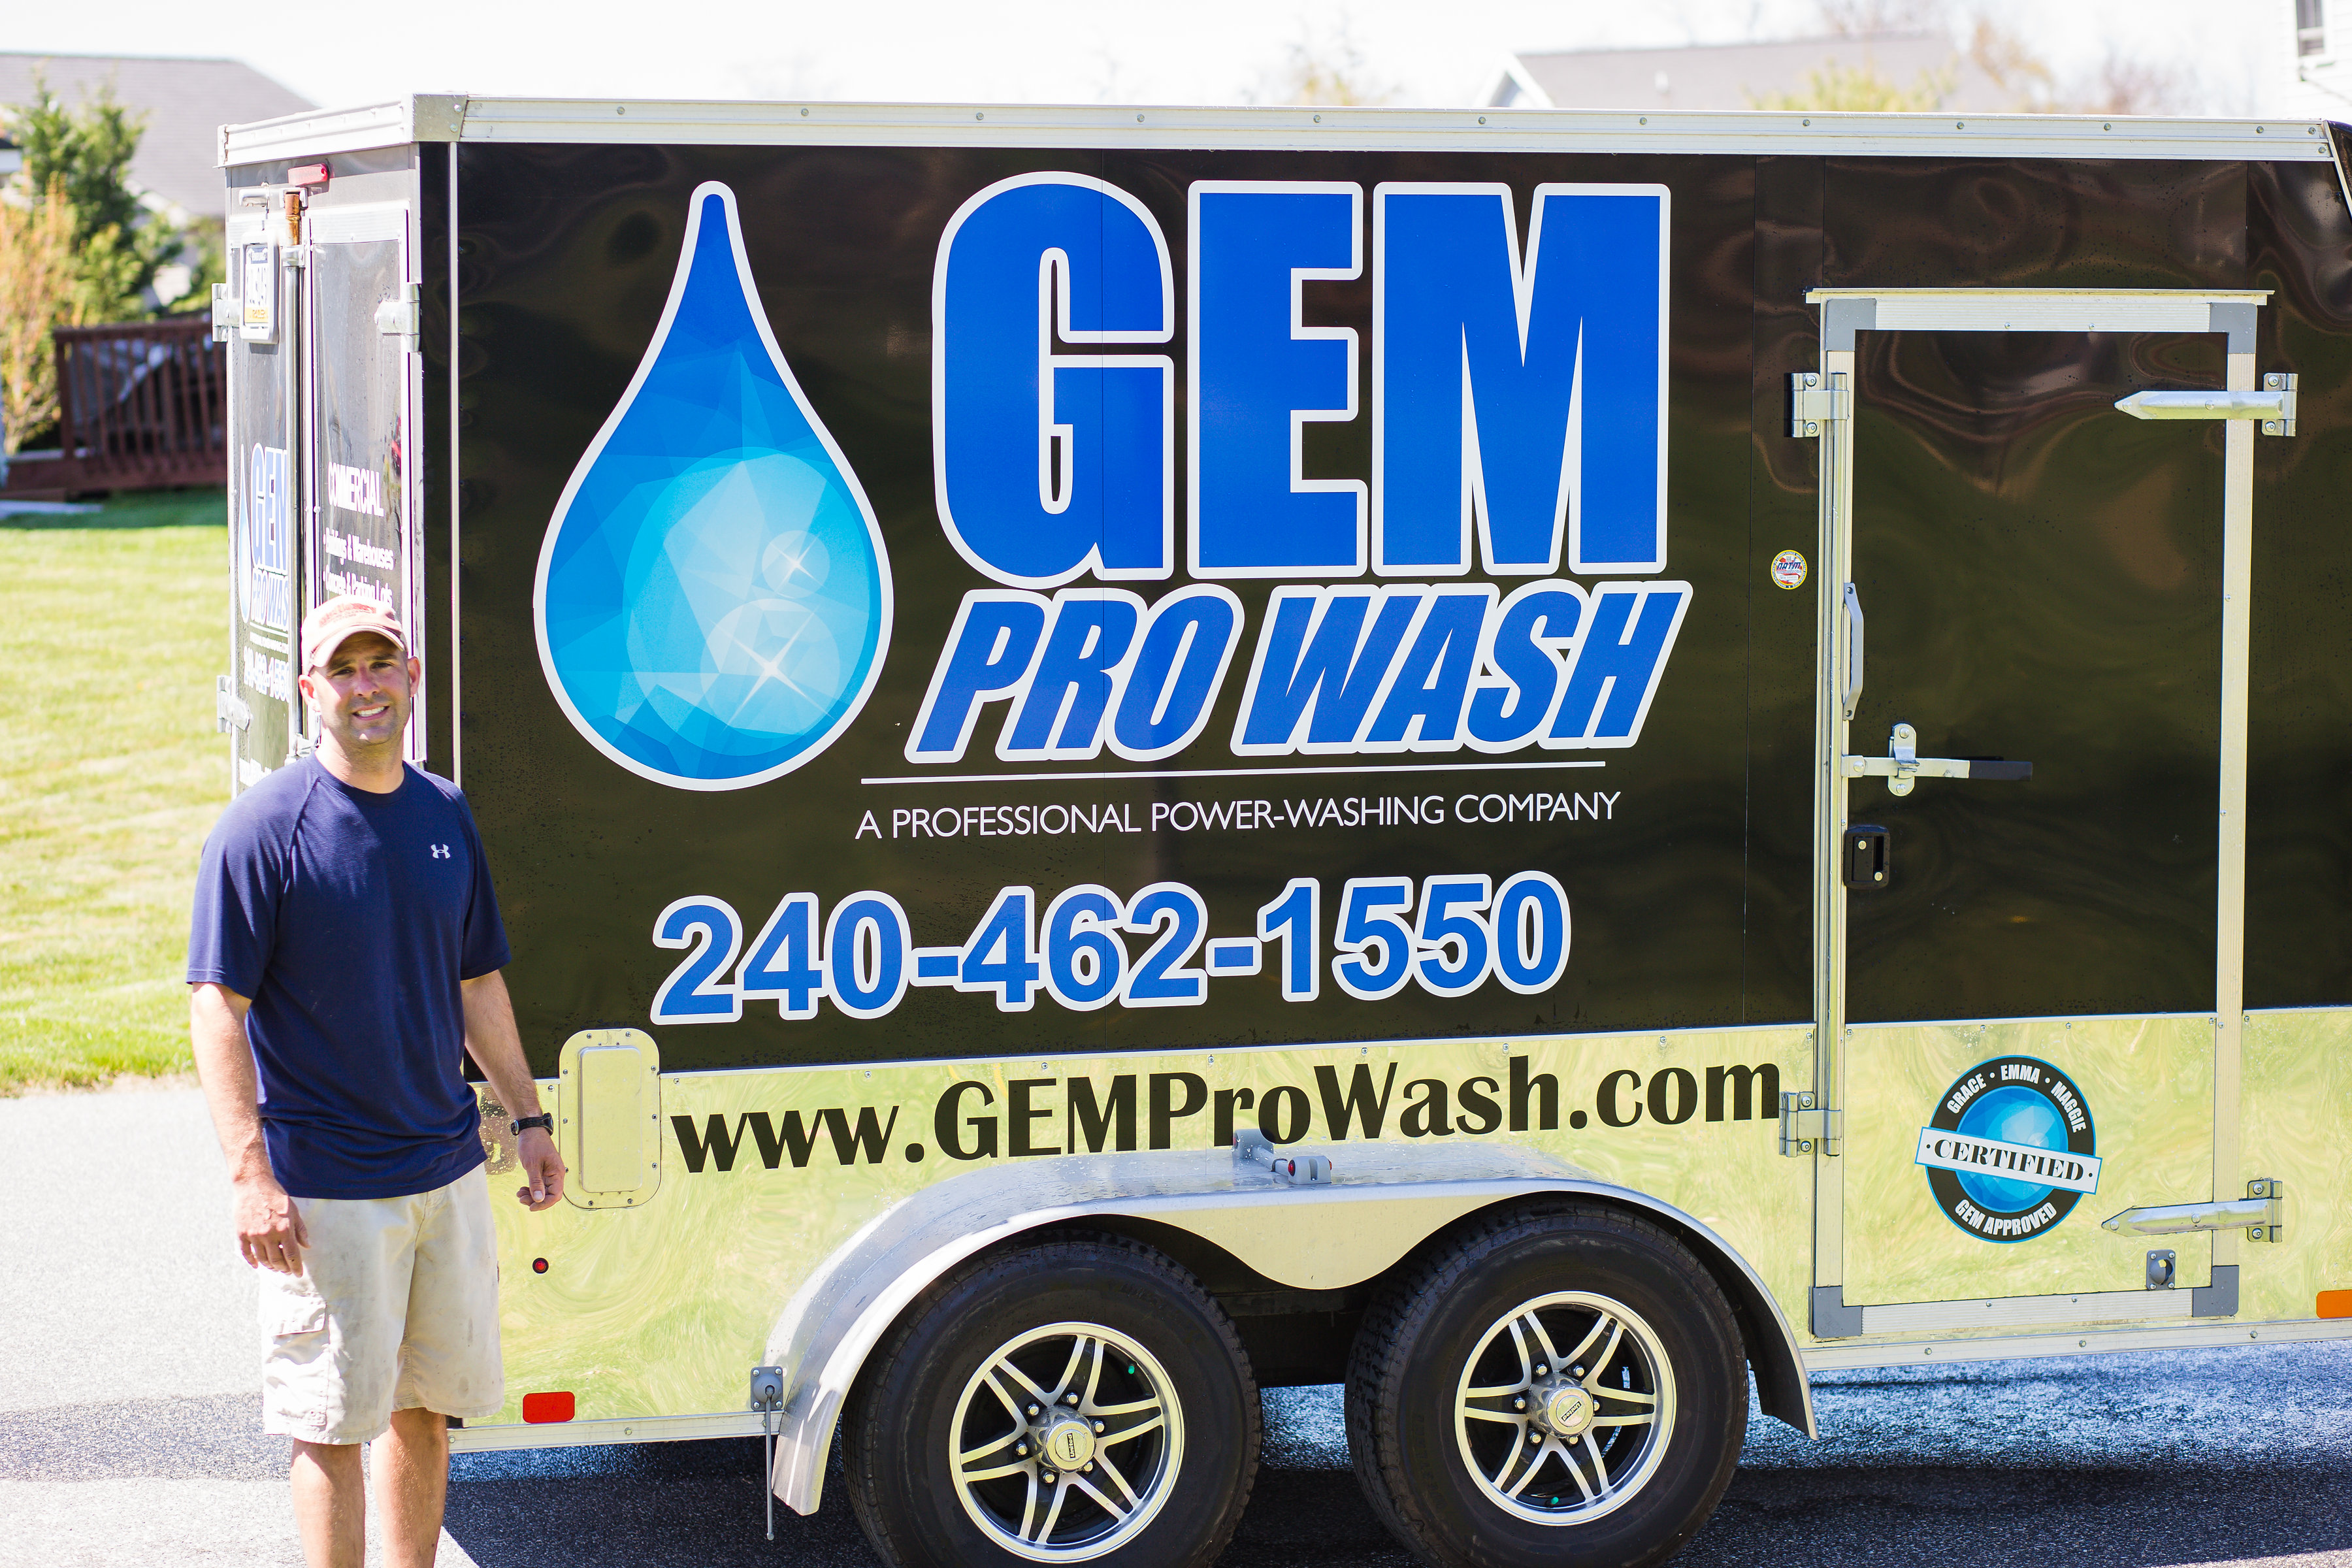 Gem Pro Wash | Roof Cleaning Company in Hagerstown MD